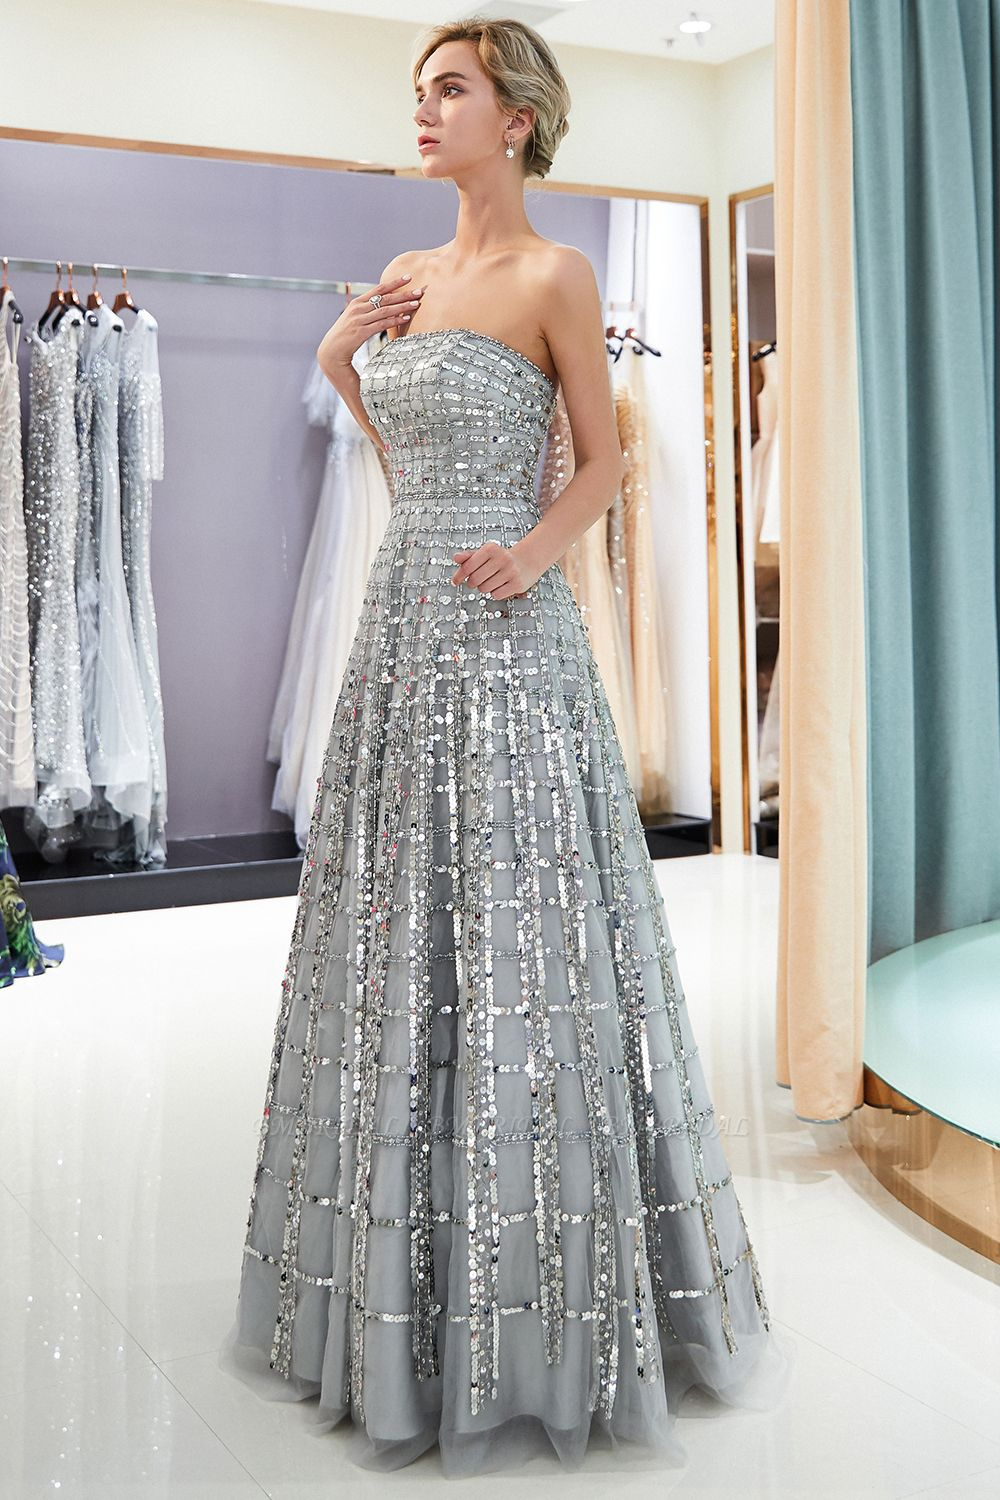 Chic A-line Strapless Sequined Prom Dresses Chiffon Long Party Dresses On Sale